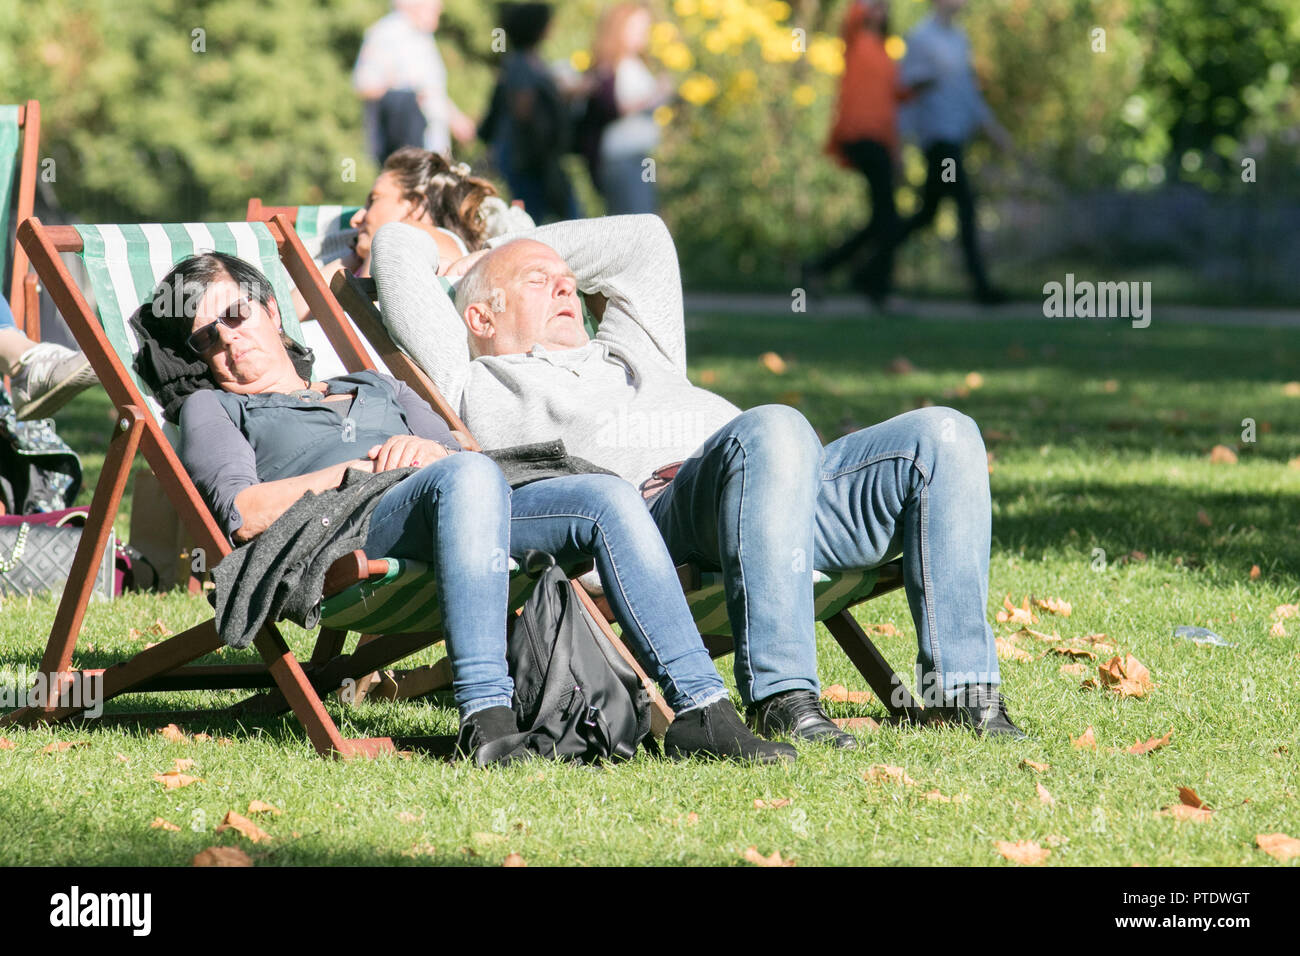 London UK. 9th Ocrober 2018. People catching a nap in the afternoon  sunshine in Saint James's Park covered in fallen leaves on a warm autumn day as October is forecast to be the hottest month in Seven years as the Indian summer returns Credit: amer ghazzal/Alamy Live News - Stock Image